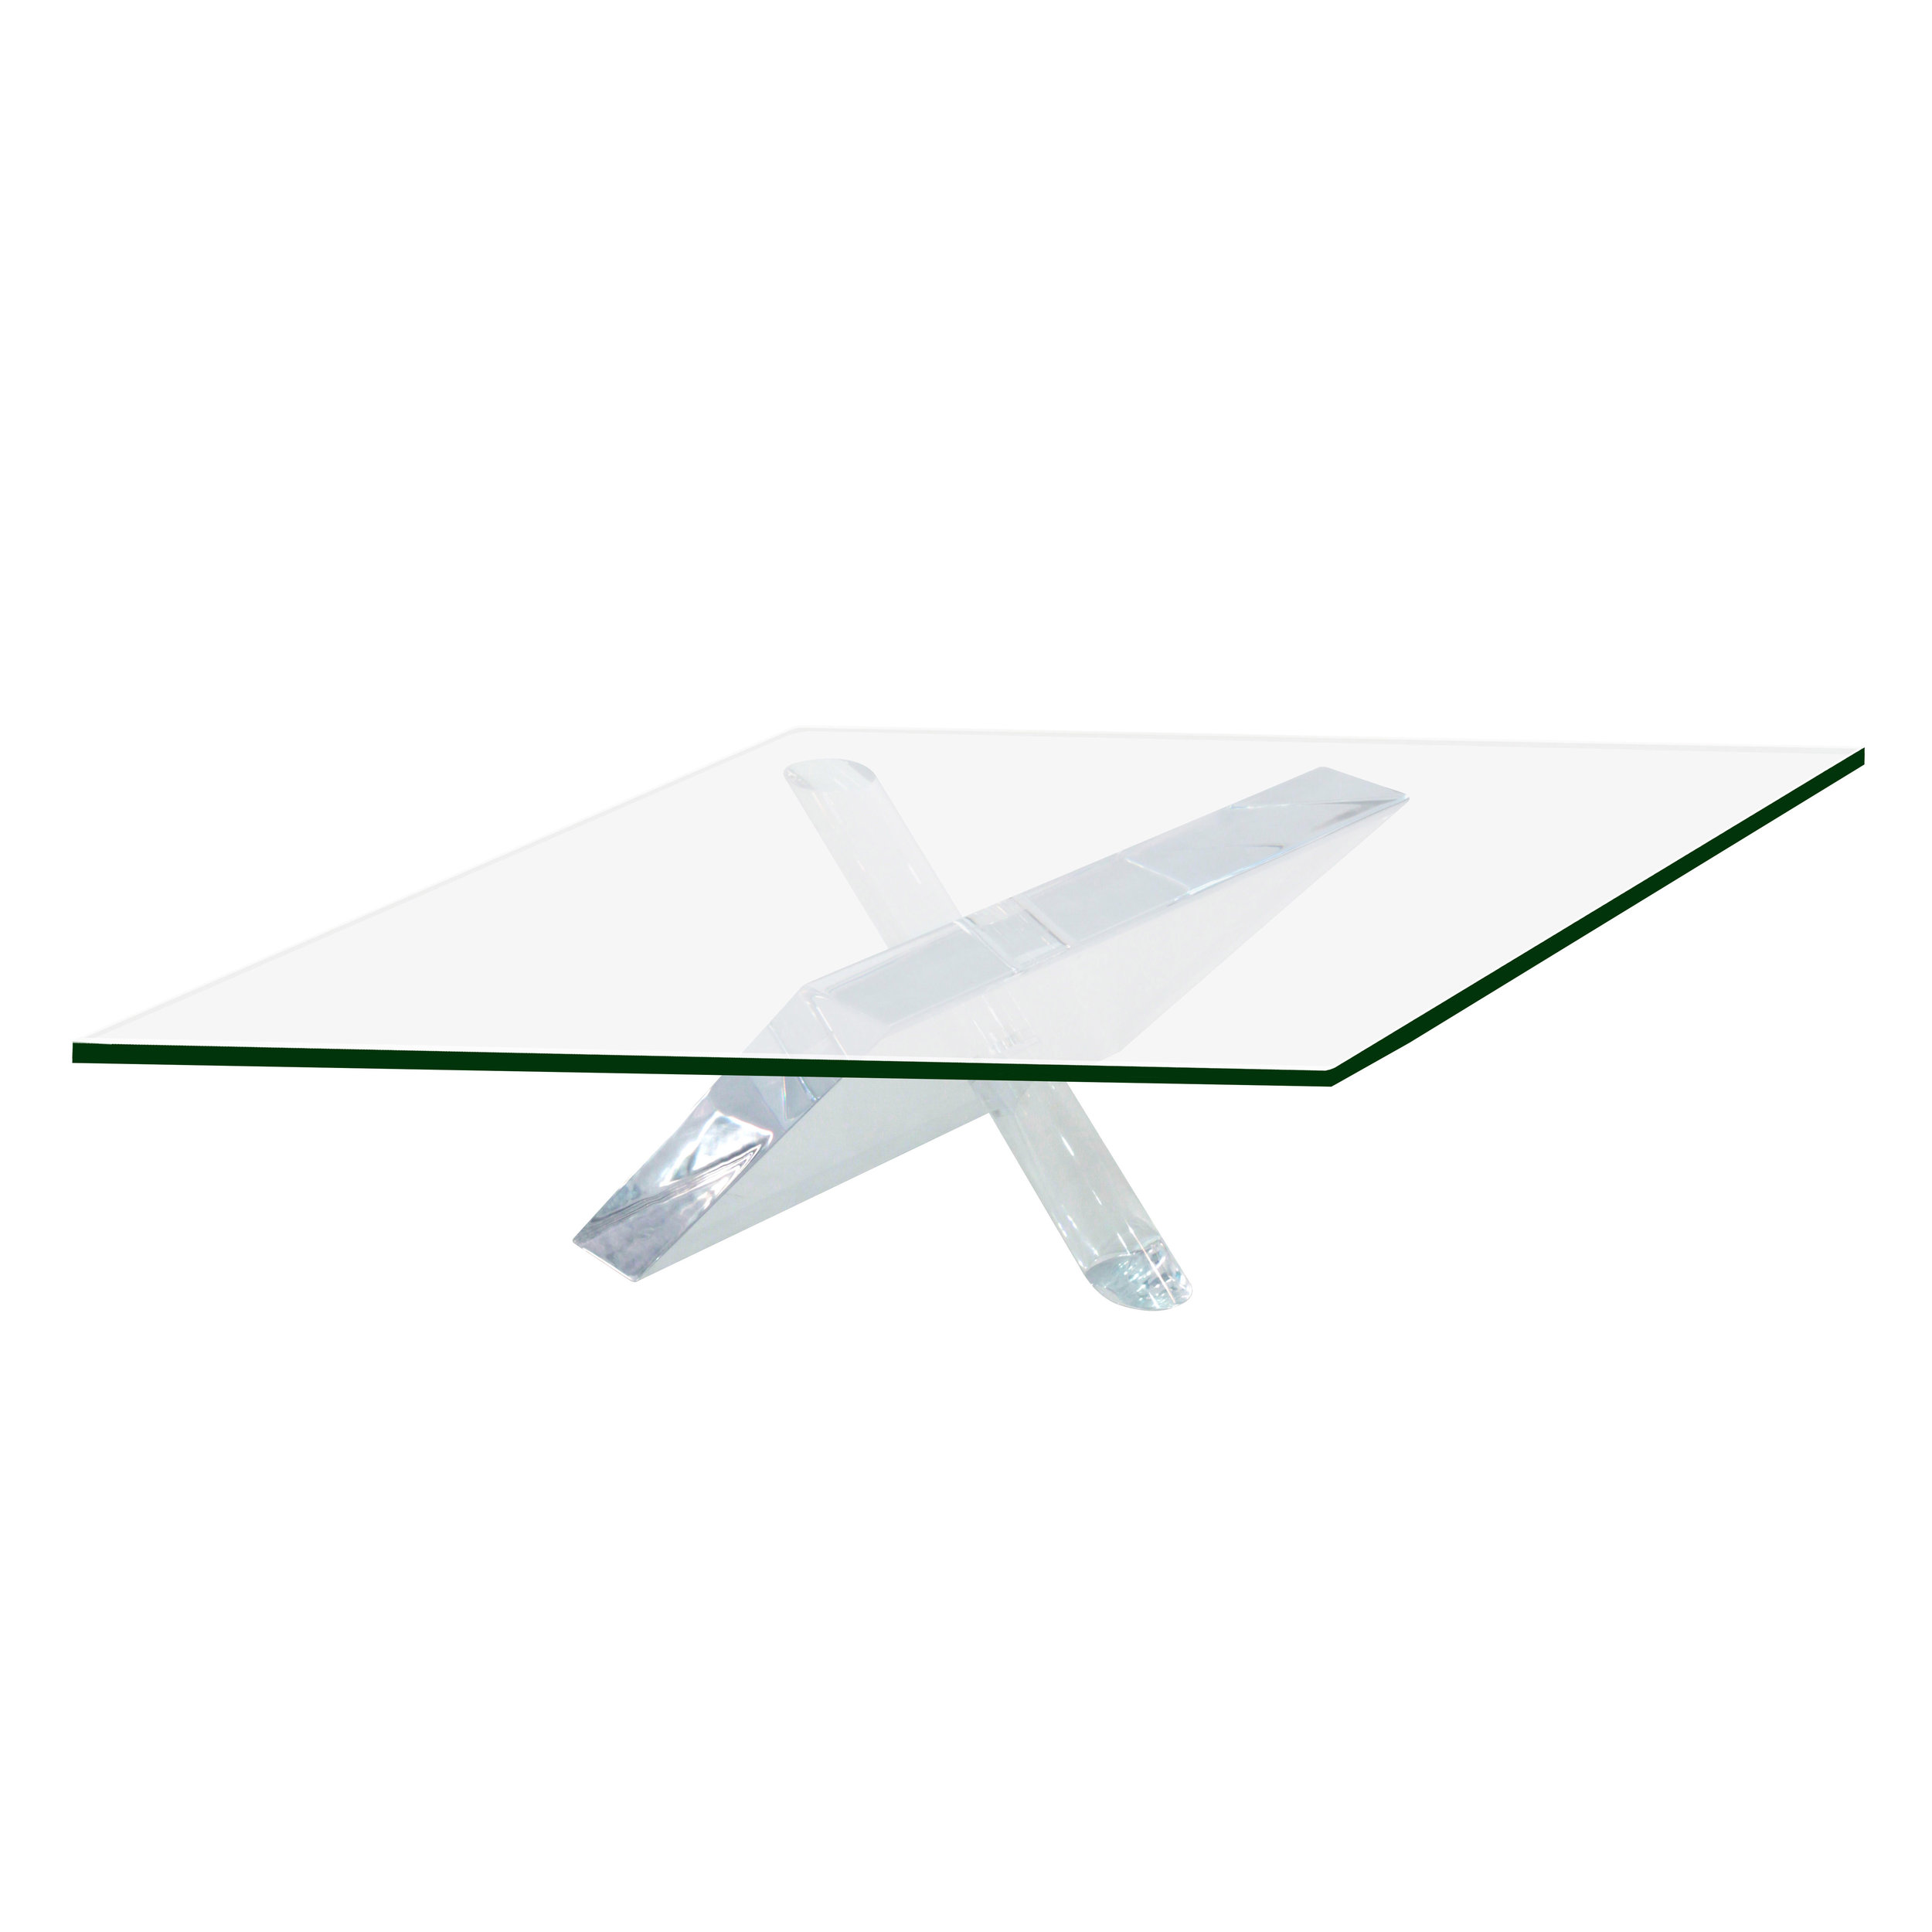 70's 65 thick lucite with rod thr coffeetable339 hiresA.JPG